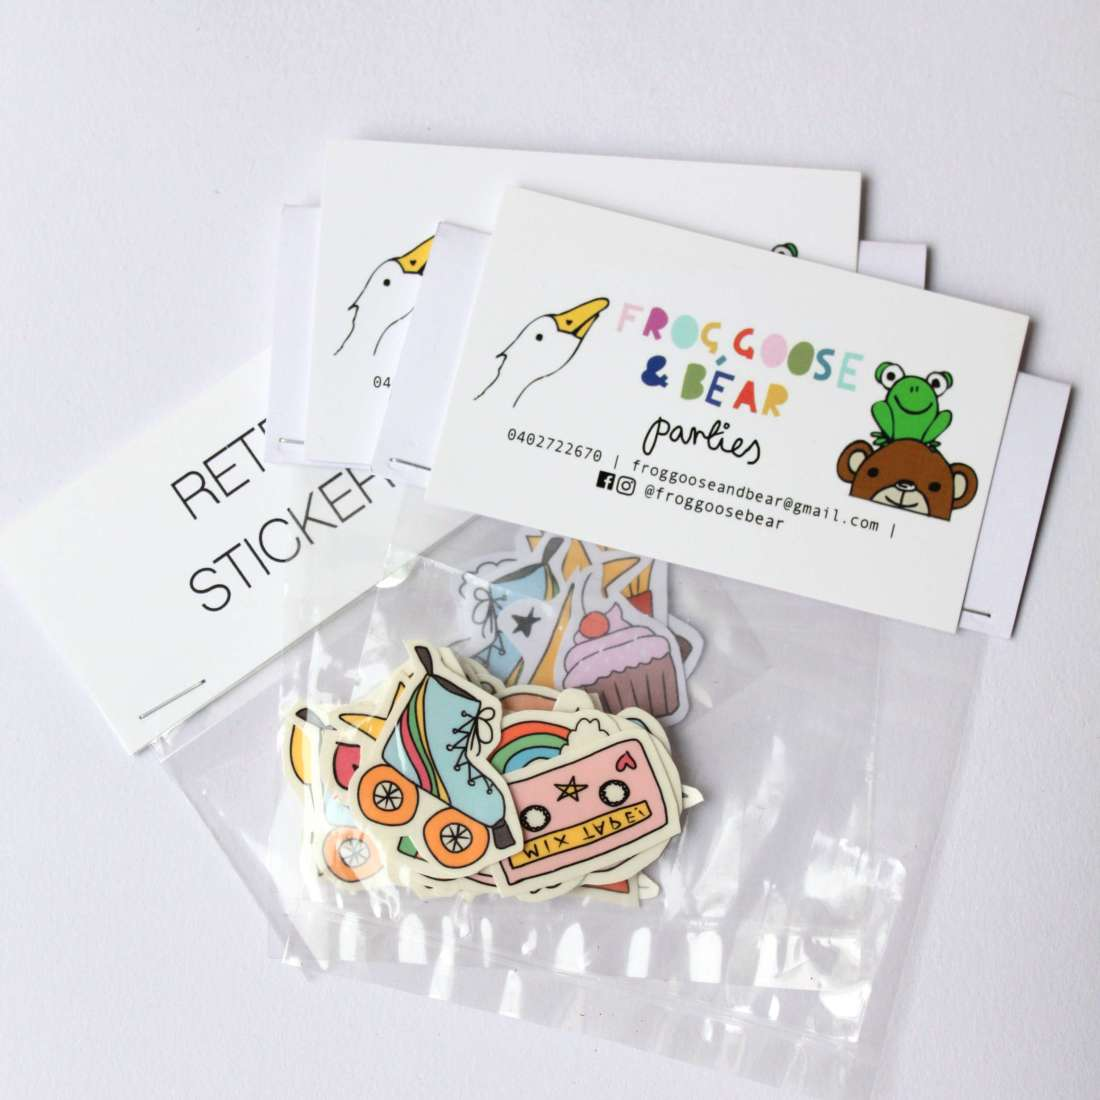 Frog, Goose & Bear - Tattoos and stickers